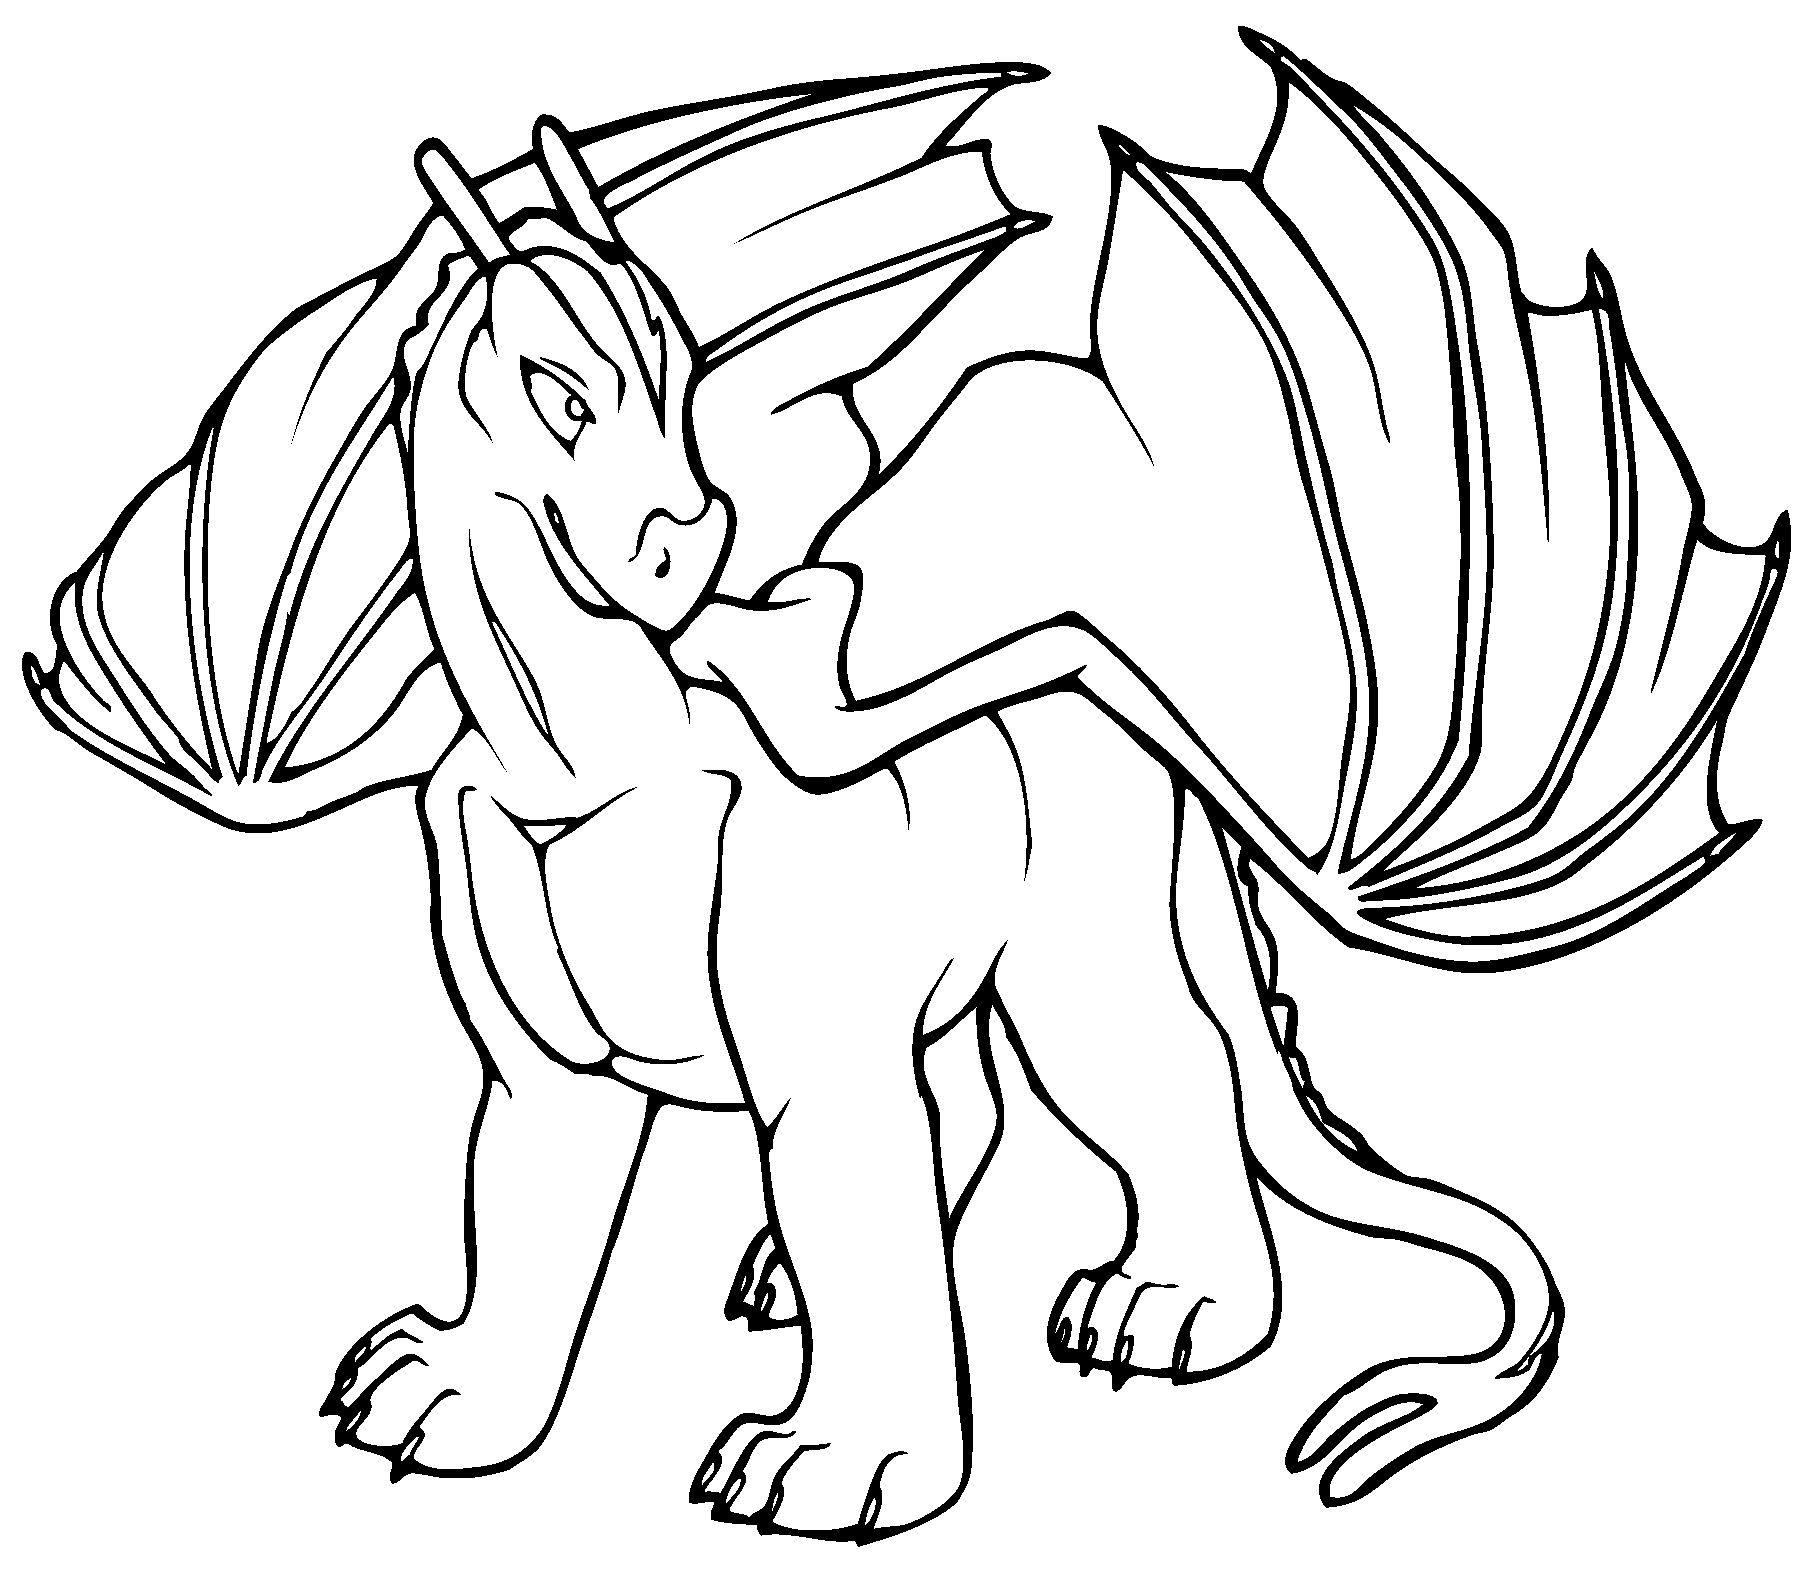 Baby Dragon Coloring Pages Unique Free Printable Dragon Coloring Pages For Kids In 2020 Dragon Coloring Page Cute Dragons Unicorn Coloring Pages